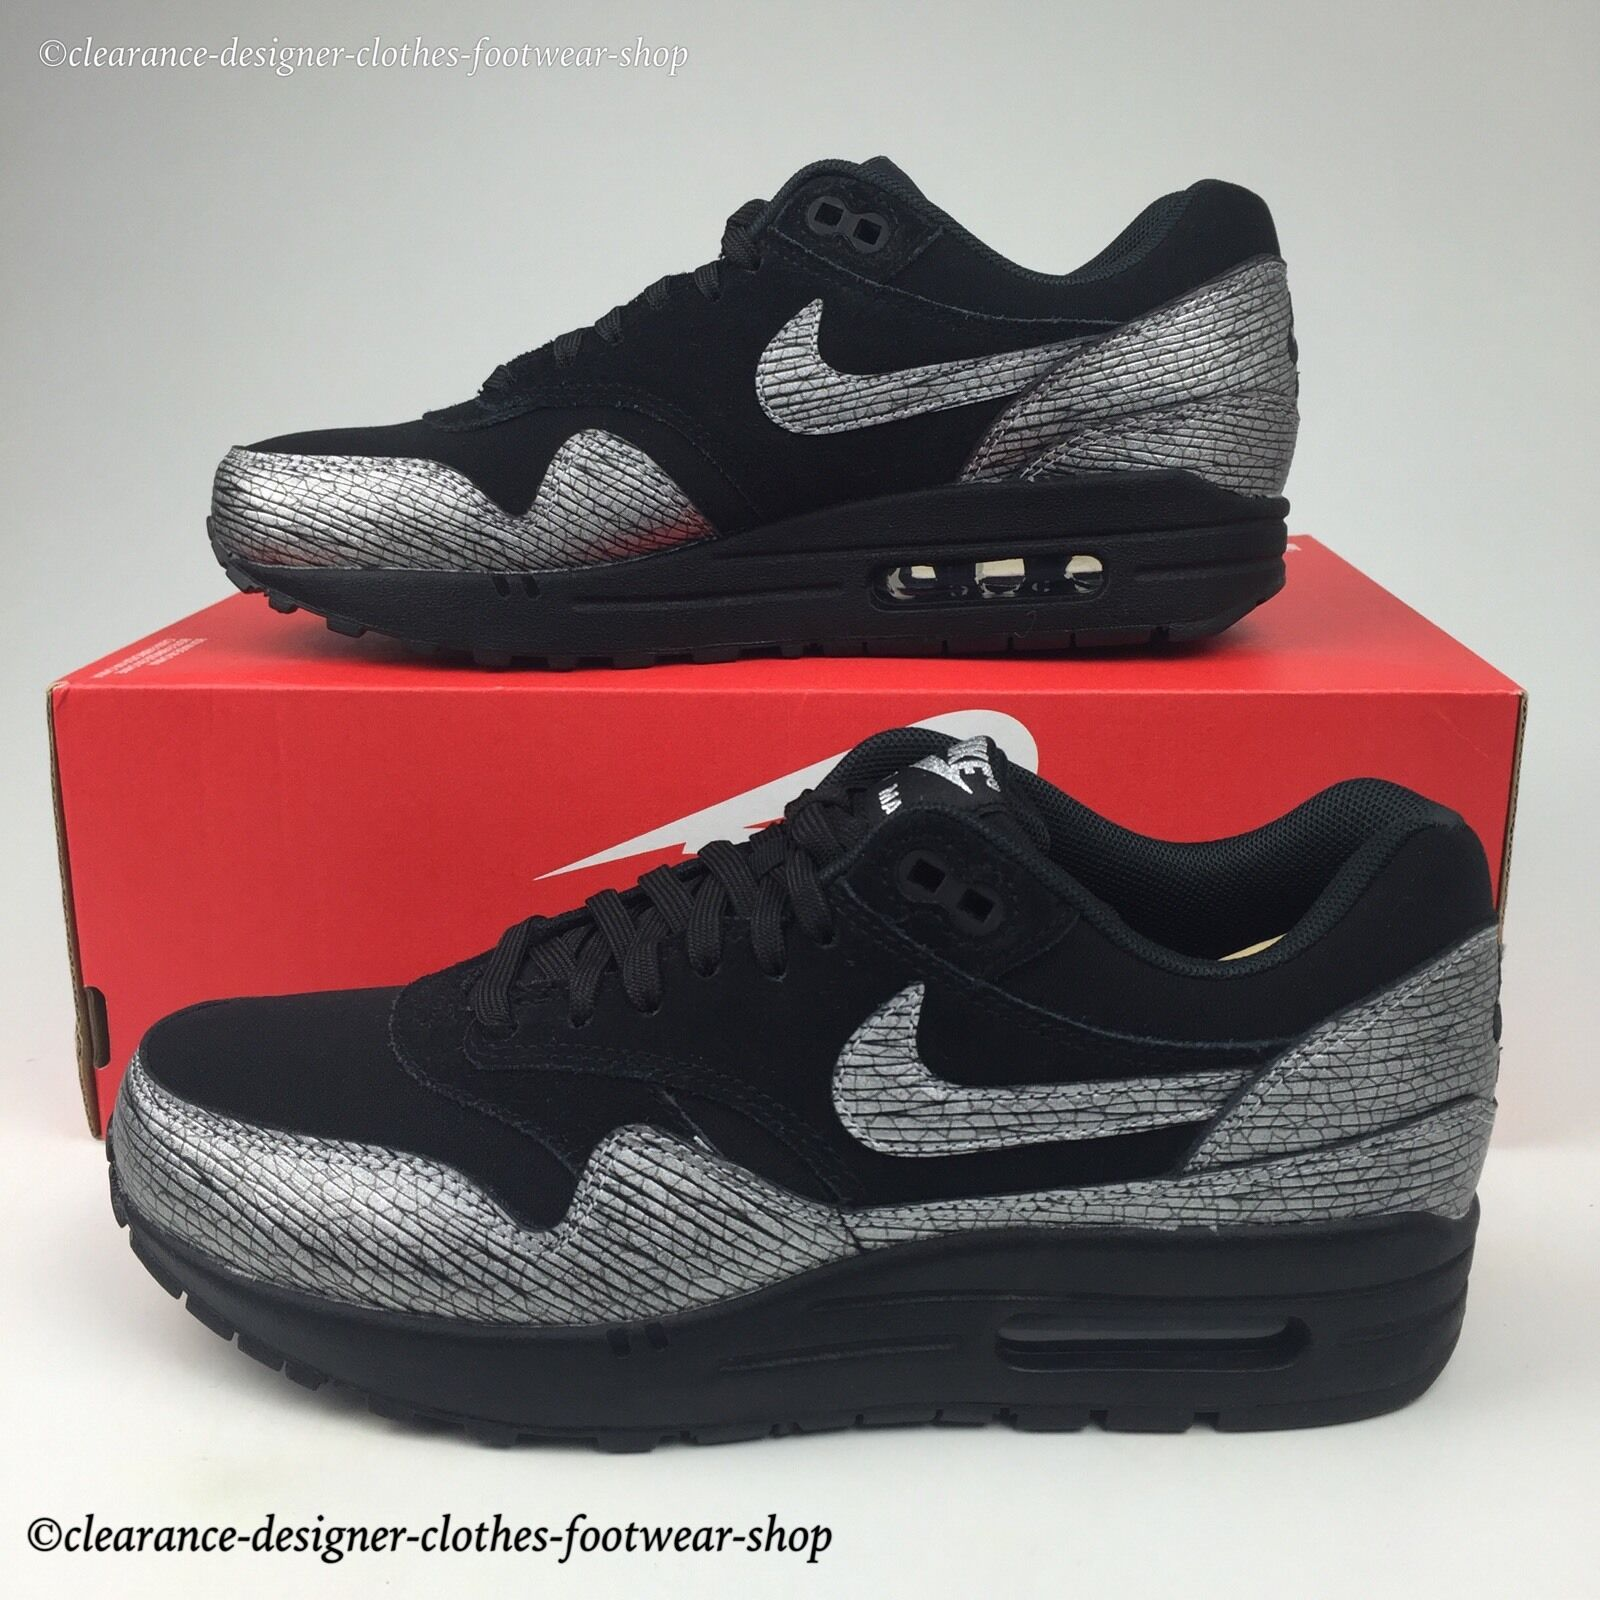 NIKE AIR MAX 1 PREMIUM PREMIUM PREMIUM TRAINERS Femme GIRLS LADIES CASUAL chaussures5  125 5f5922